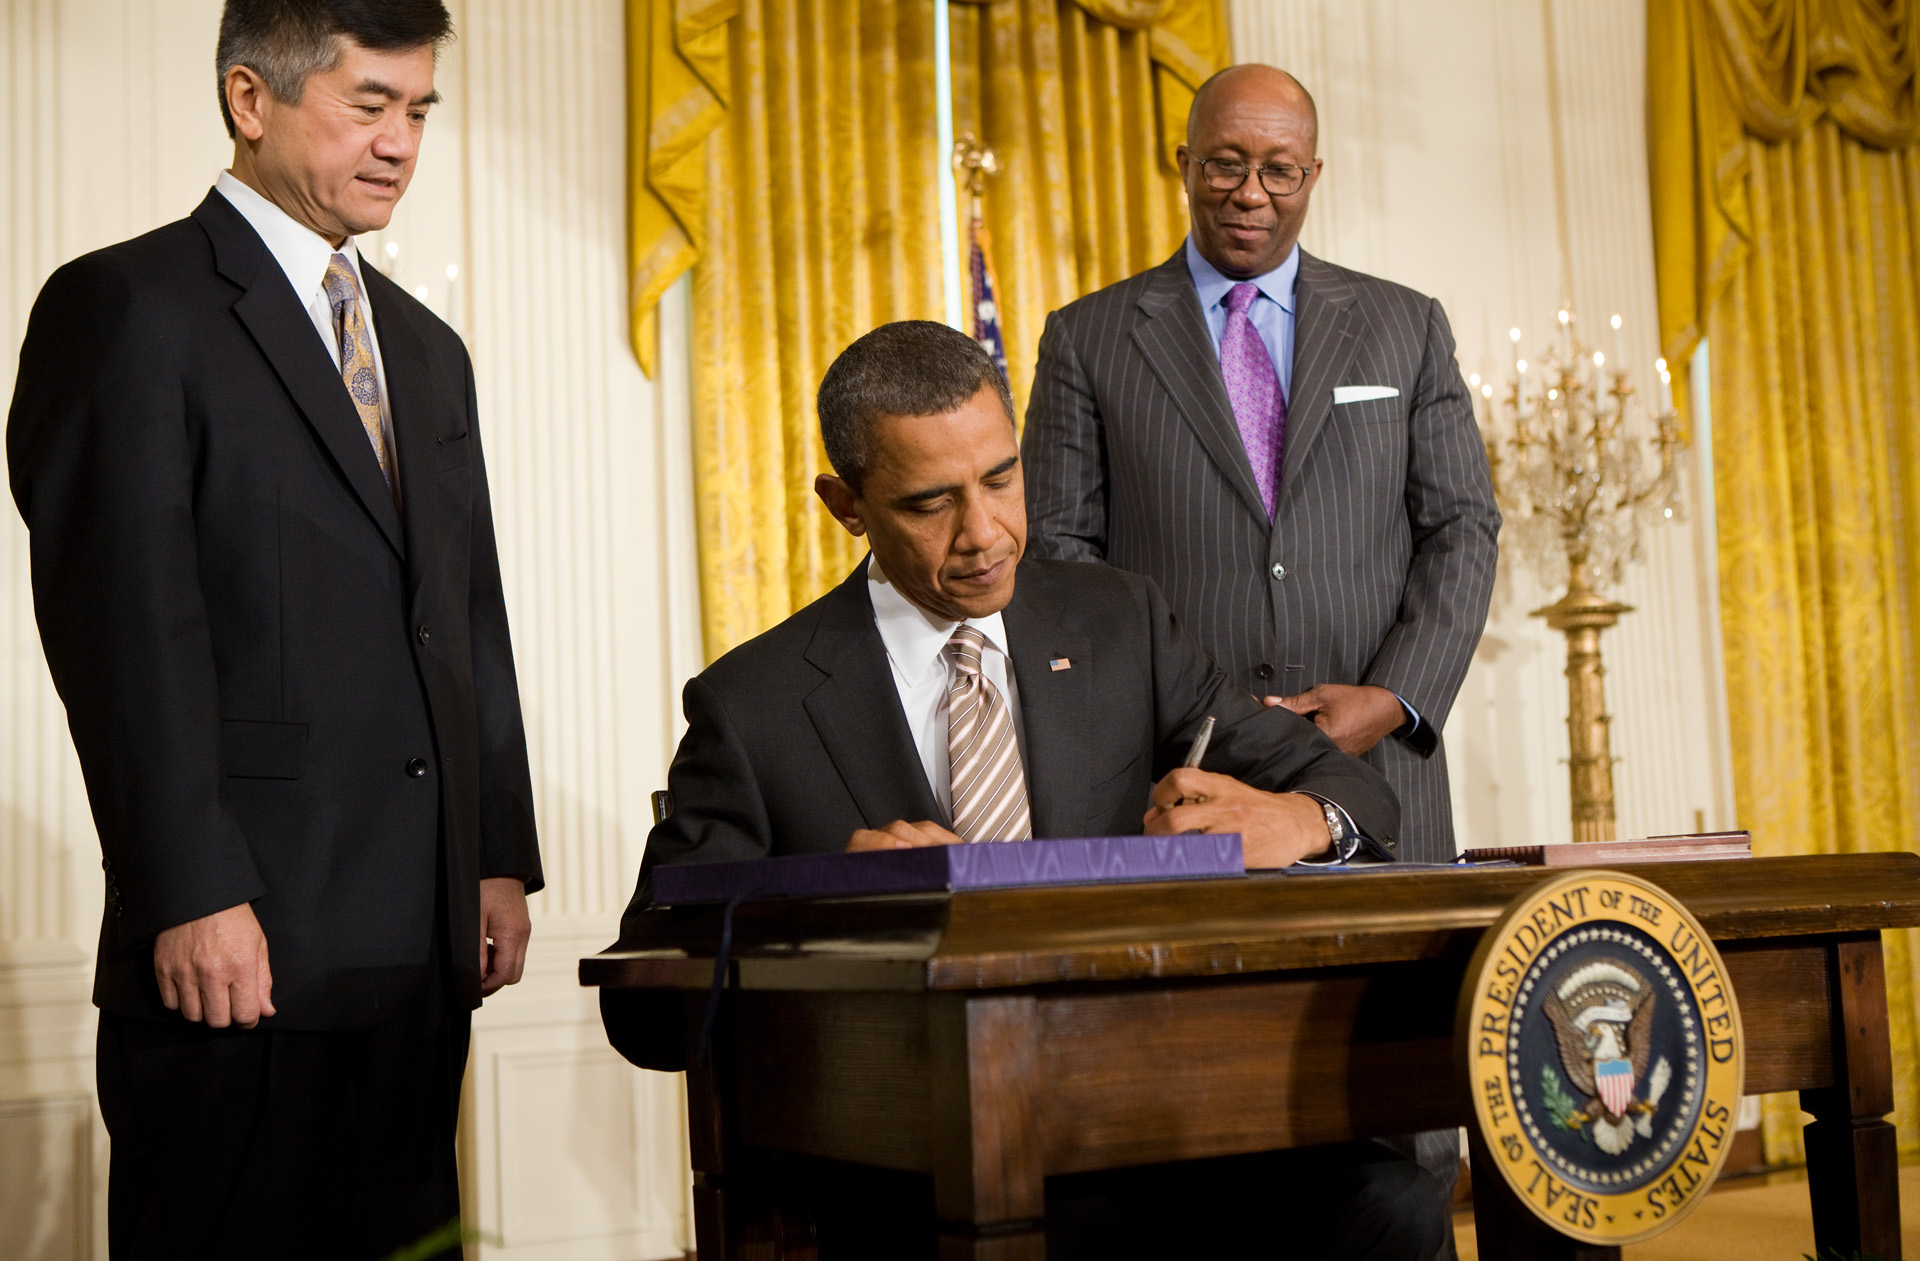 The President Signs the Manufacturing Enhancement Act